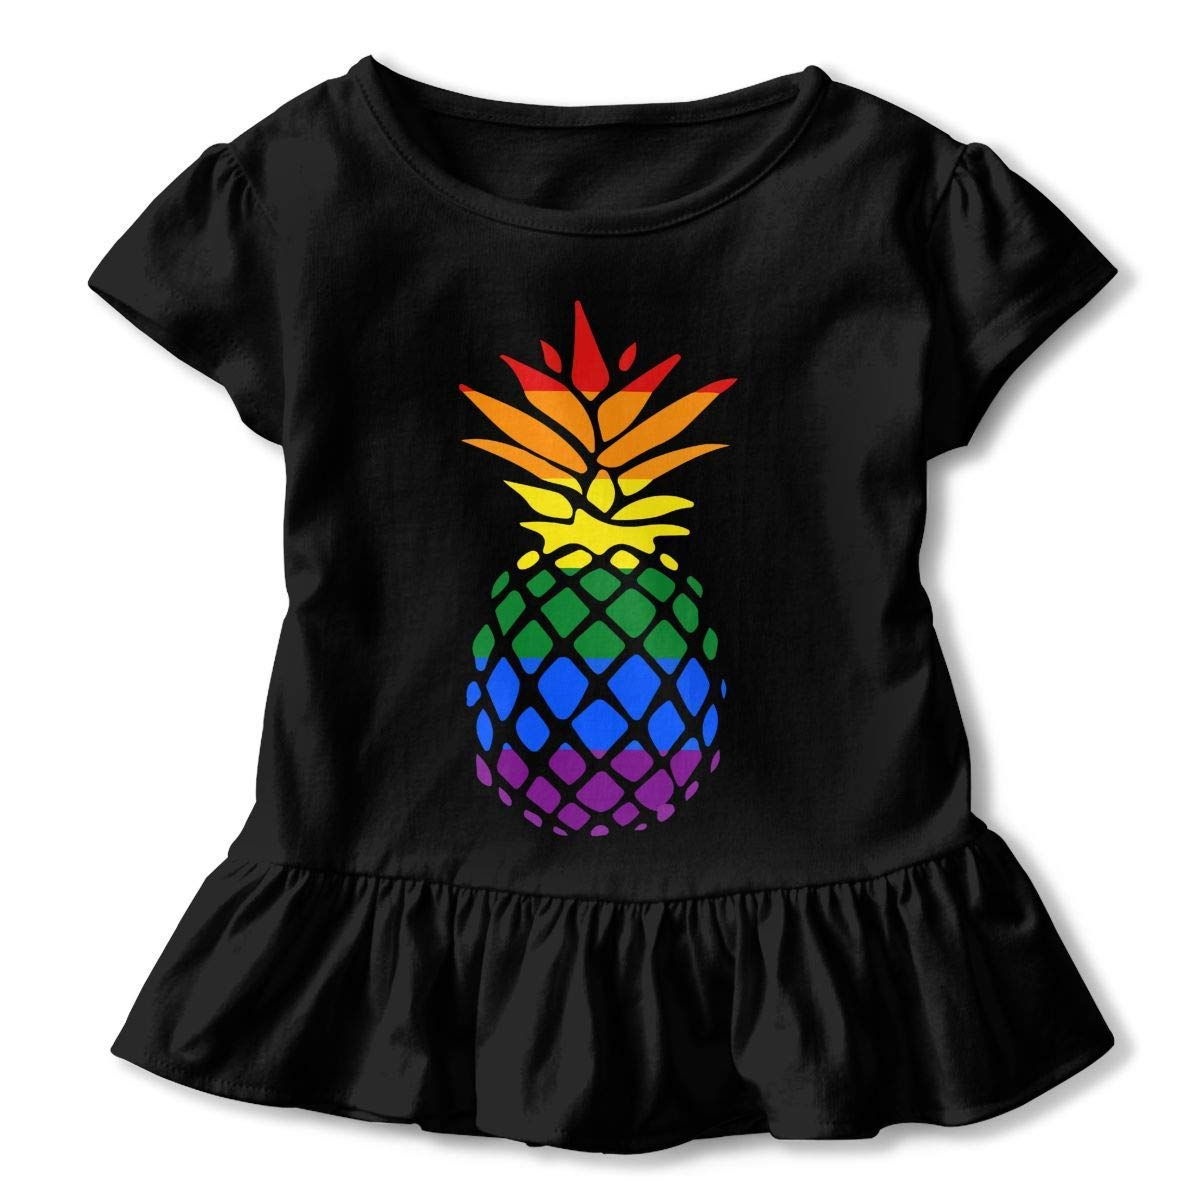 Kawaii Tunic Tops with Falbala PMsunglasses Short-Sleeve Pride Pineapple T-Shirts for Children 2-6T